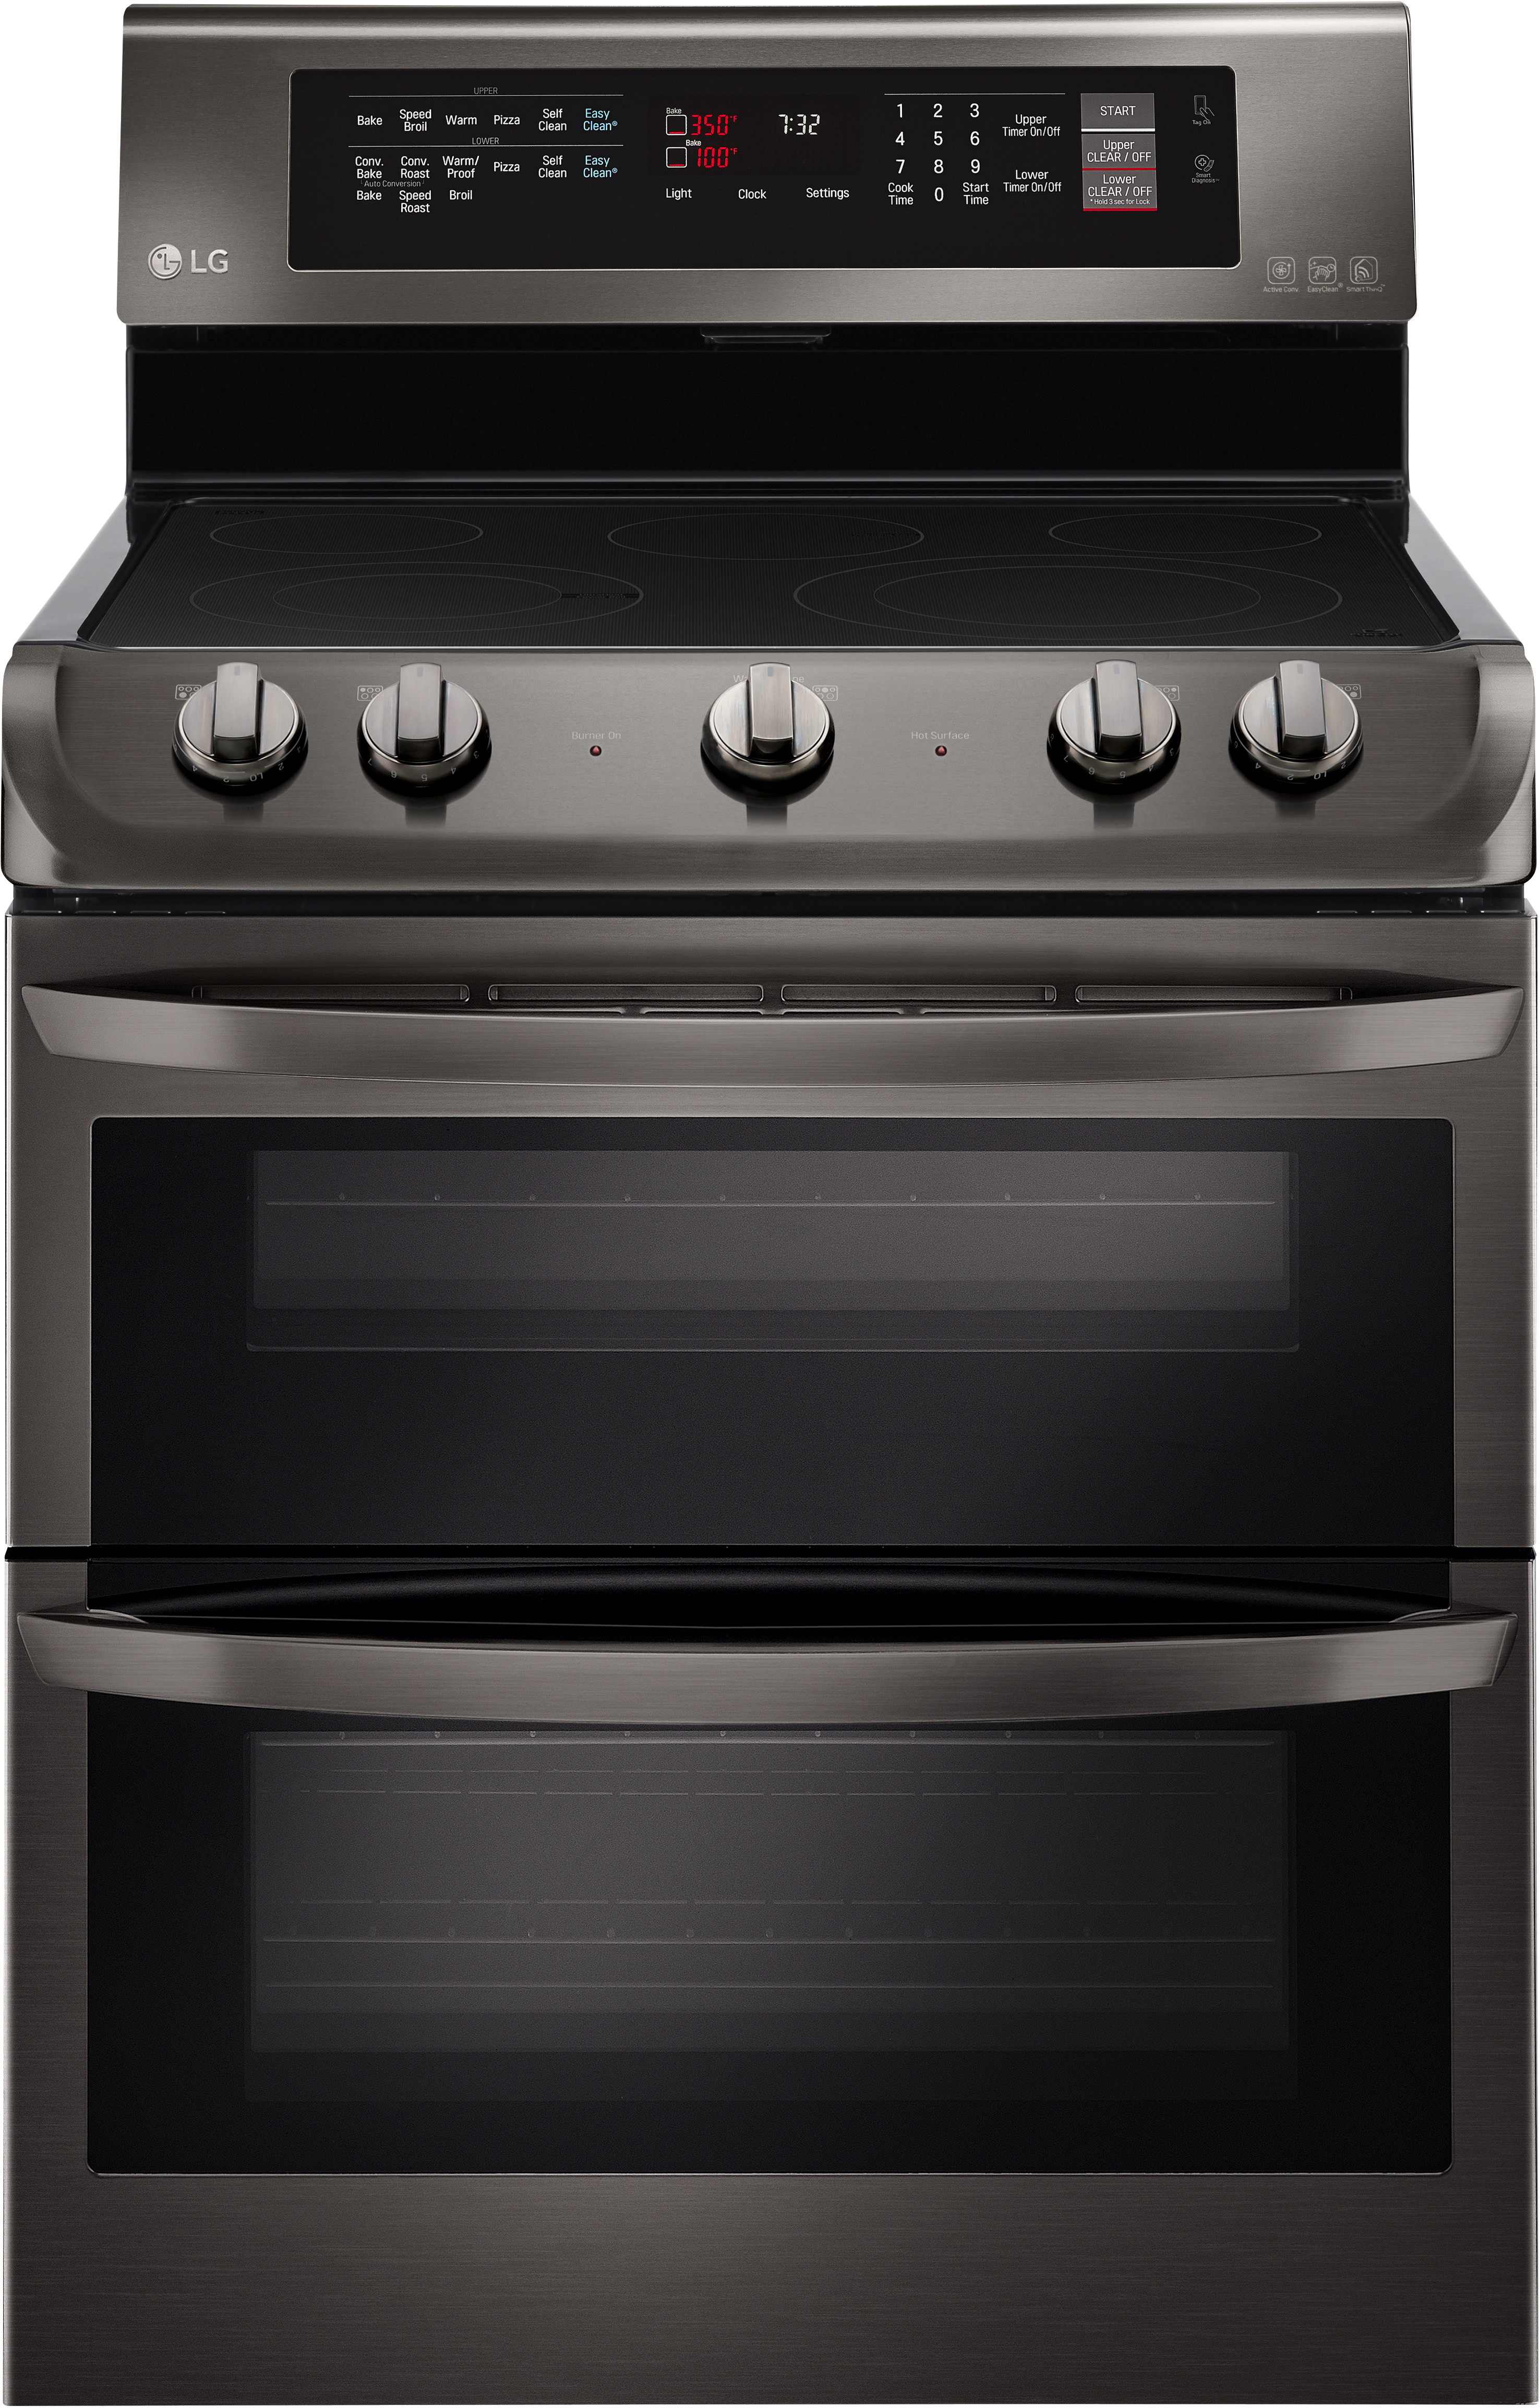 Side by side double oven gas stove - Side By Side Double Oven Gas Stove 57